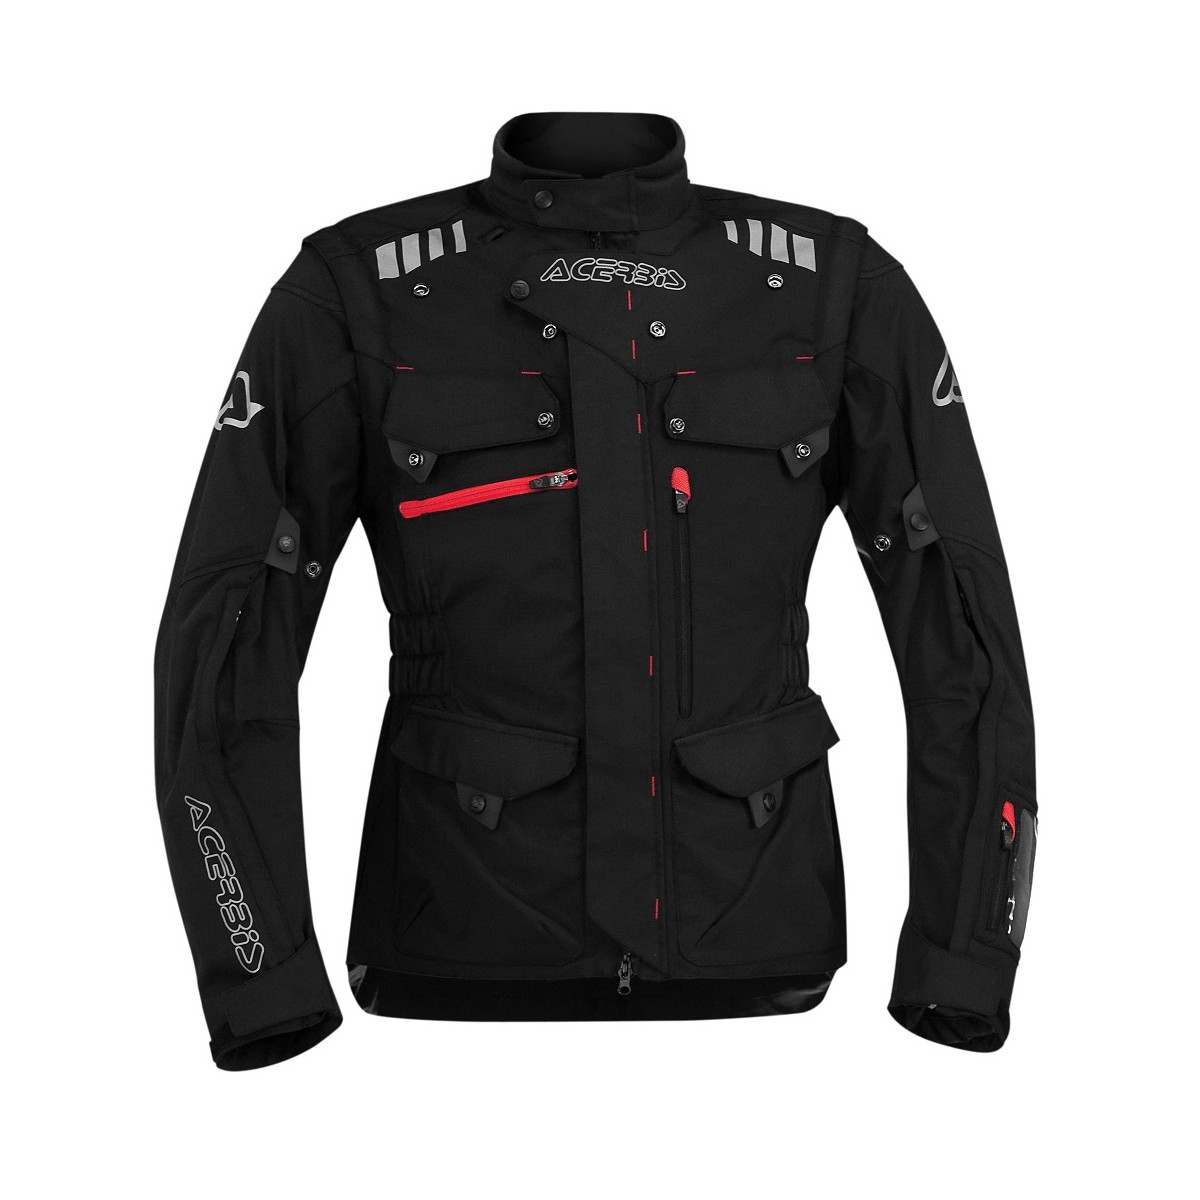 ACERBIS - ADVENTURE JACKET - BLACK